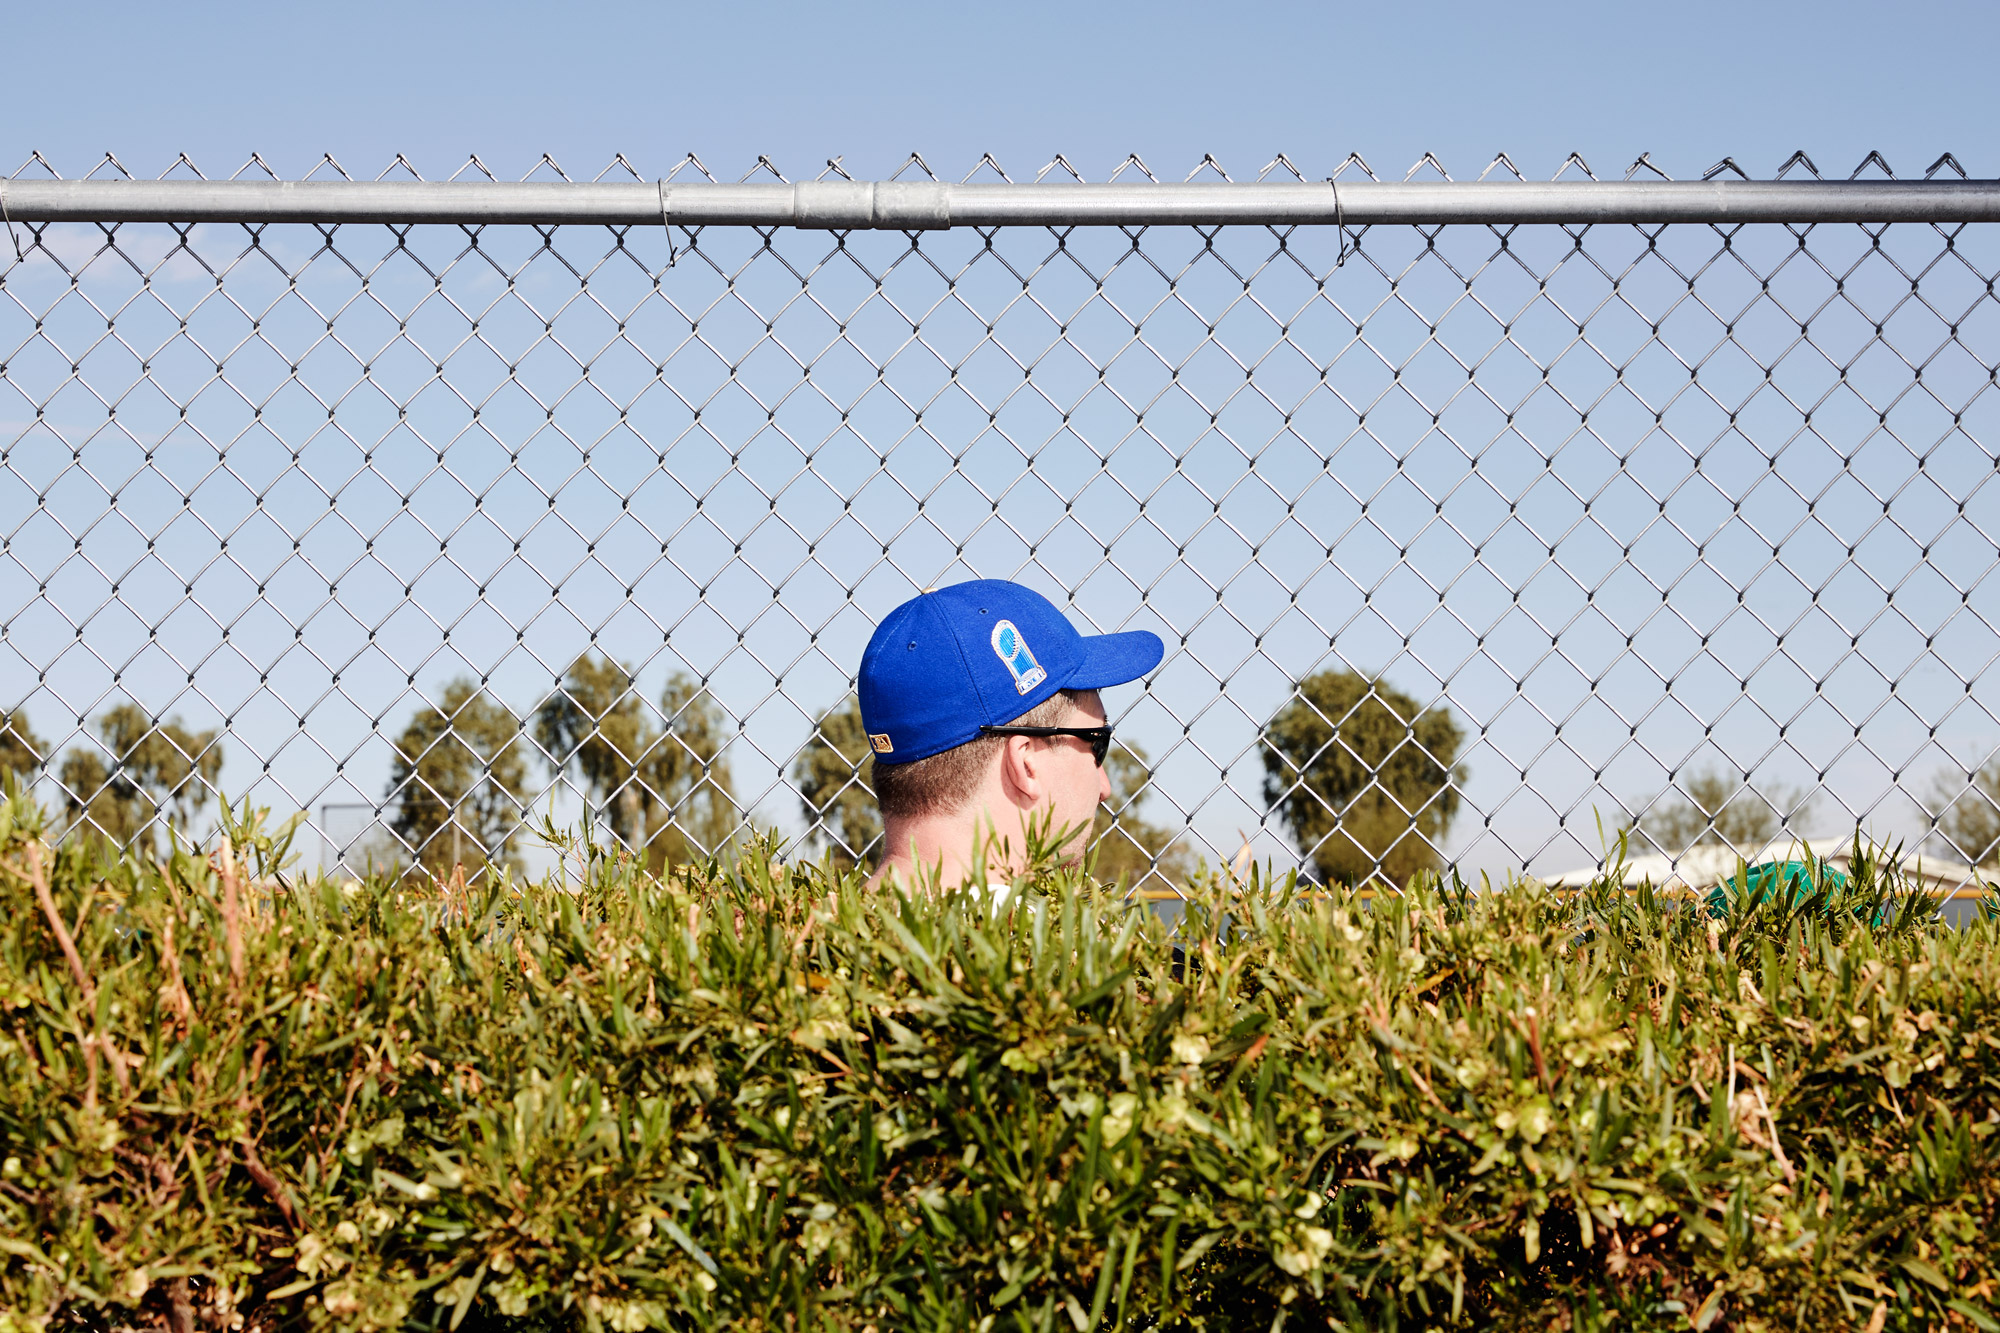 Sports Fans - Chicago Cubs Spring Training